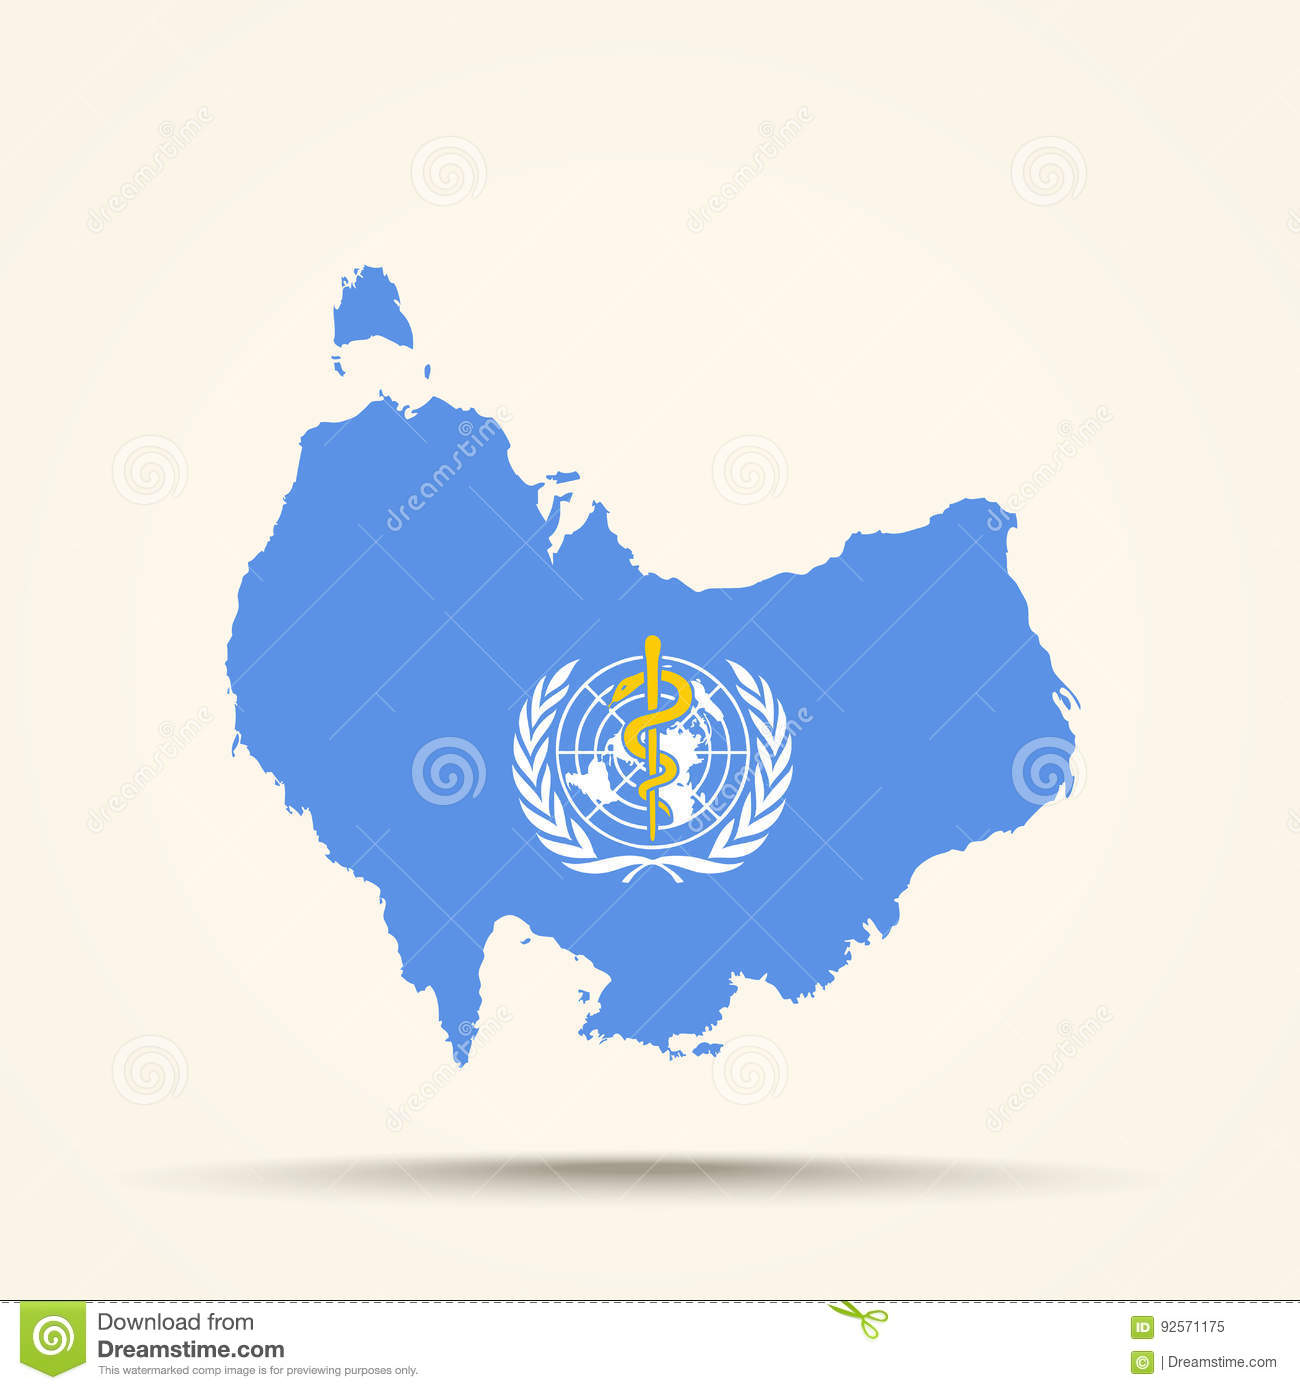 Download Map Of Australia In World Health Organization Flag Colors Stock Vector